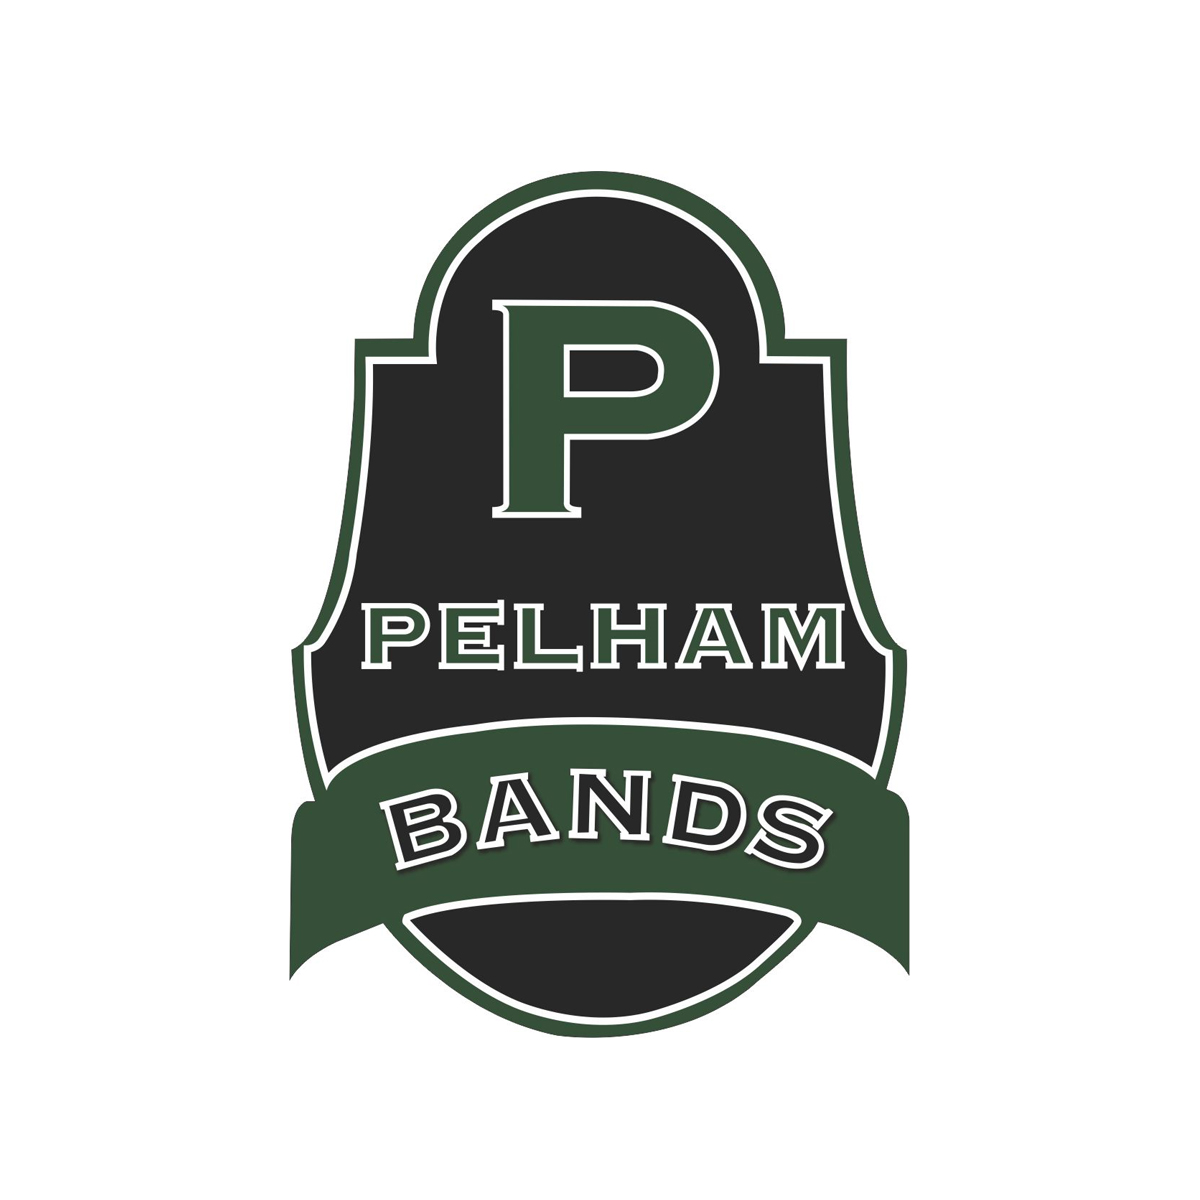 phs band logo for merchandise.jpg